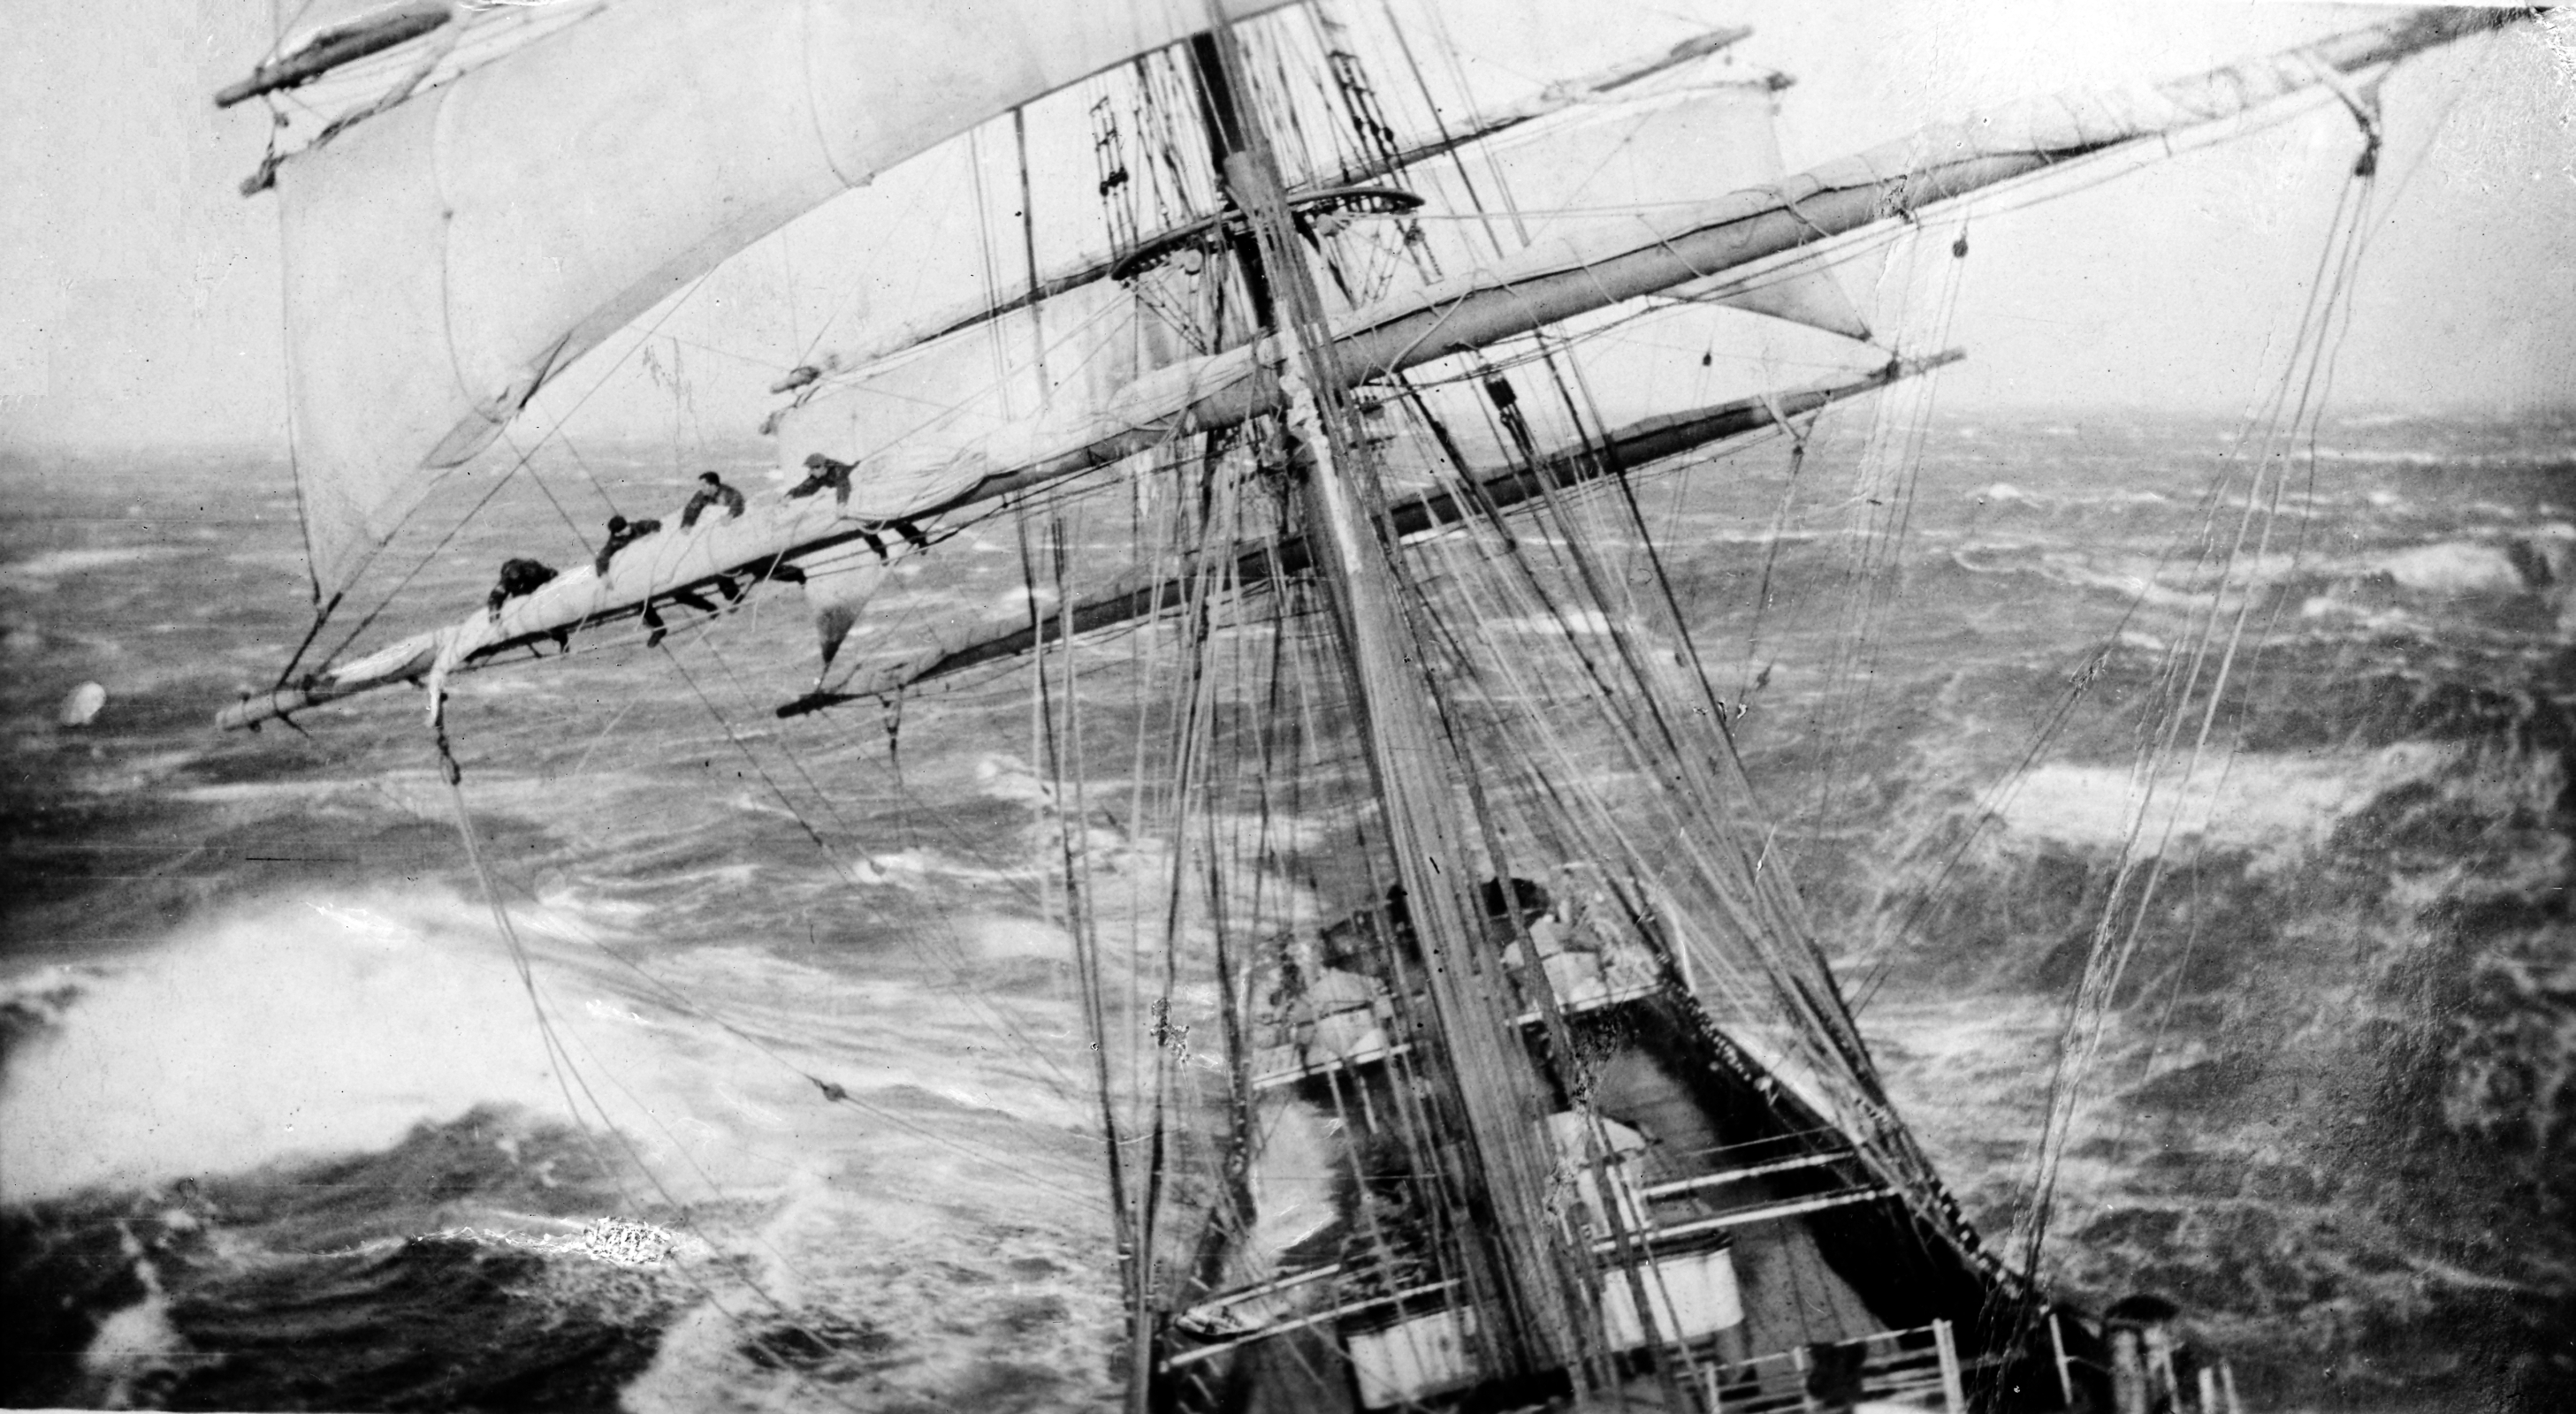 The full-rigged ship Garthsnaid in heavy seas, with men working in the rigging